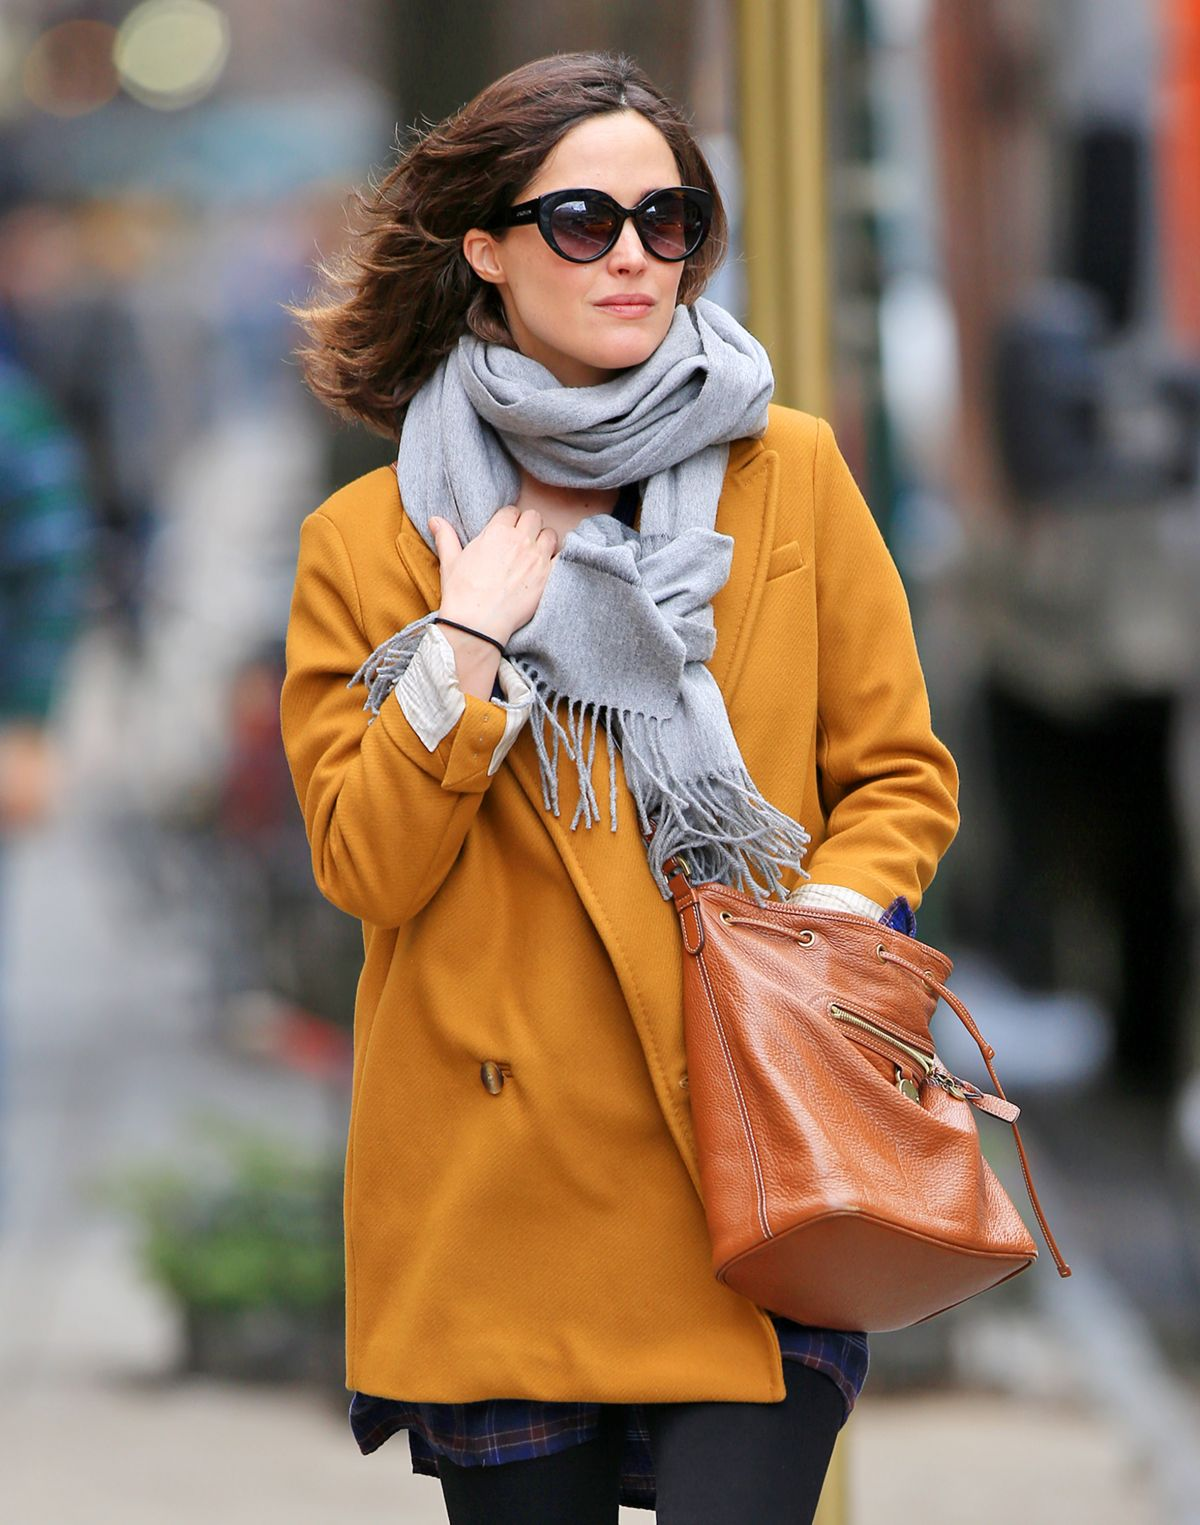 ROSE BYRNE Out and About inNew York 02/29/2016